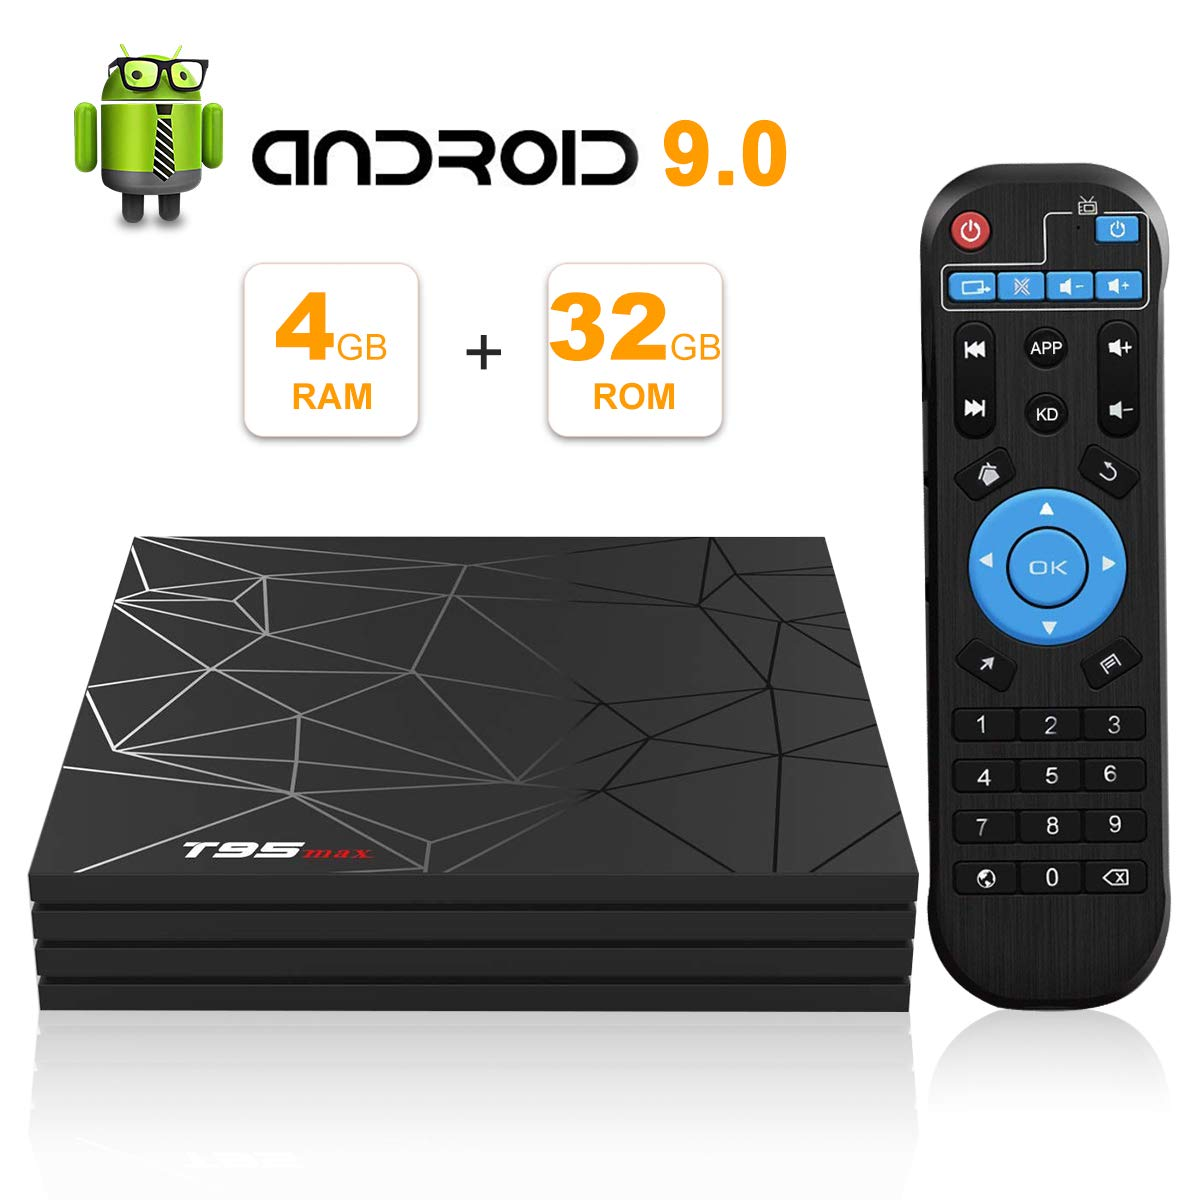 T95 MAX TV BOX, Android 9.0 Smart BOX 4GB RAM 32GB ROM Allwinner H6 CPU de